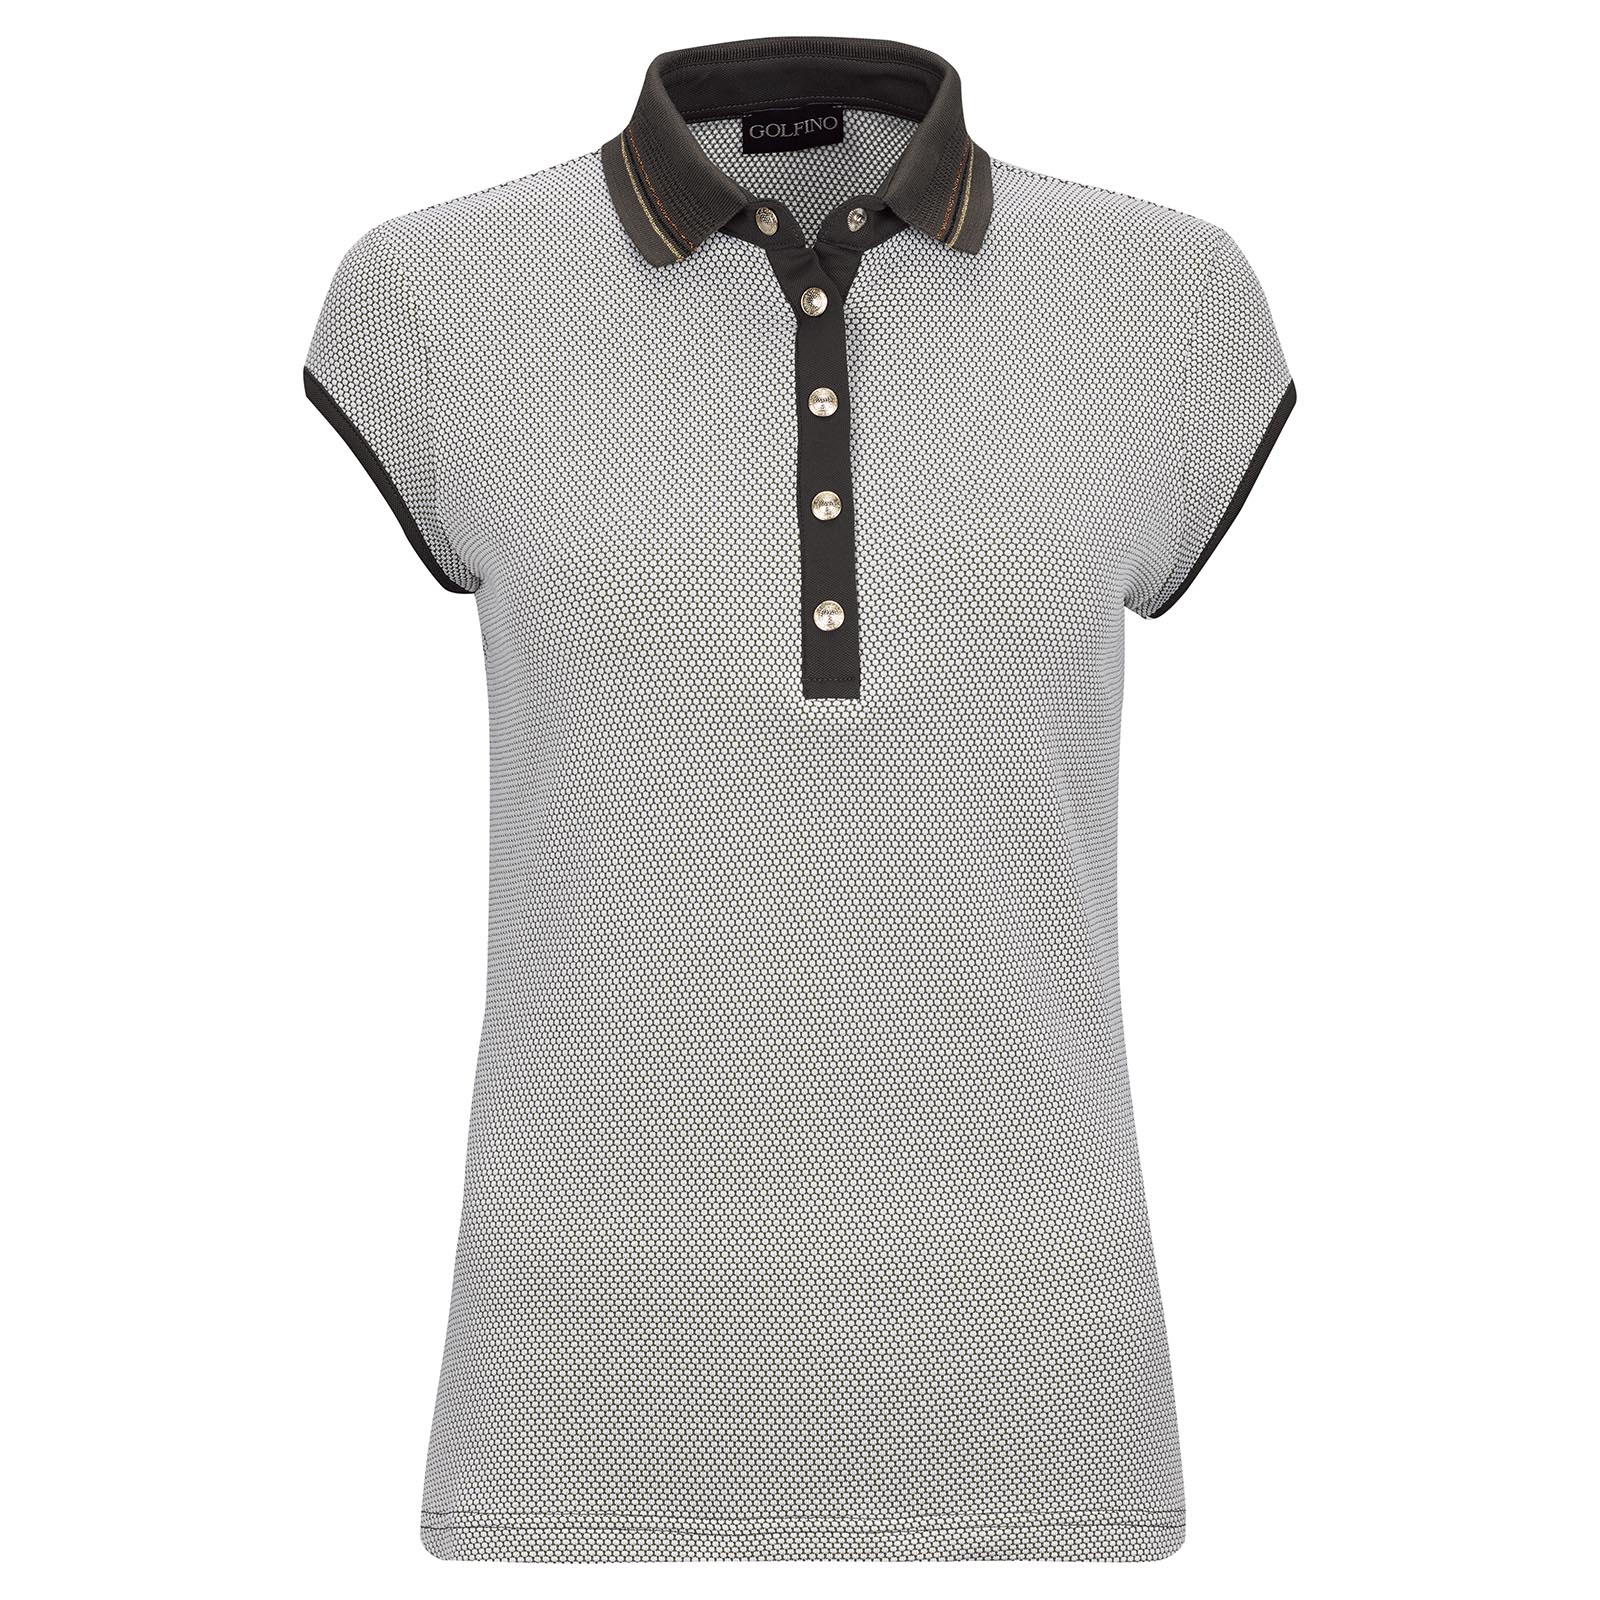 Ladies' functional golf polo shirt made of high quality jacquard bubble